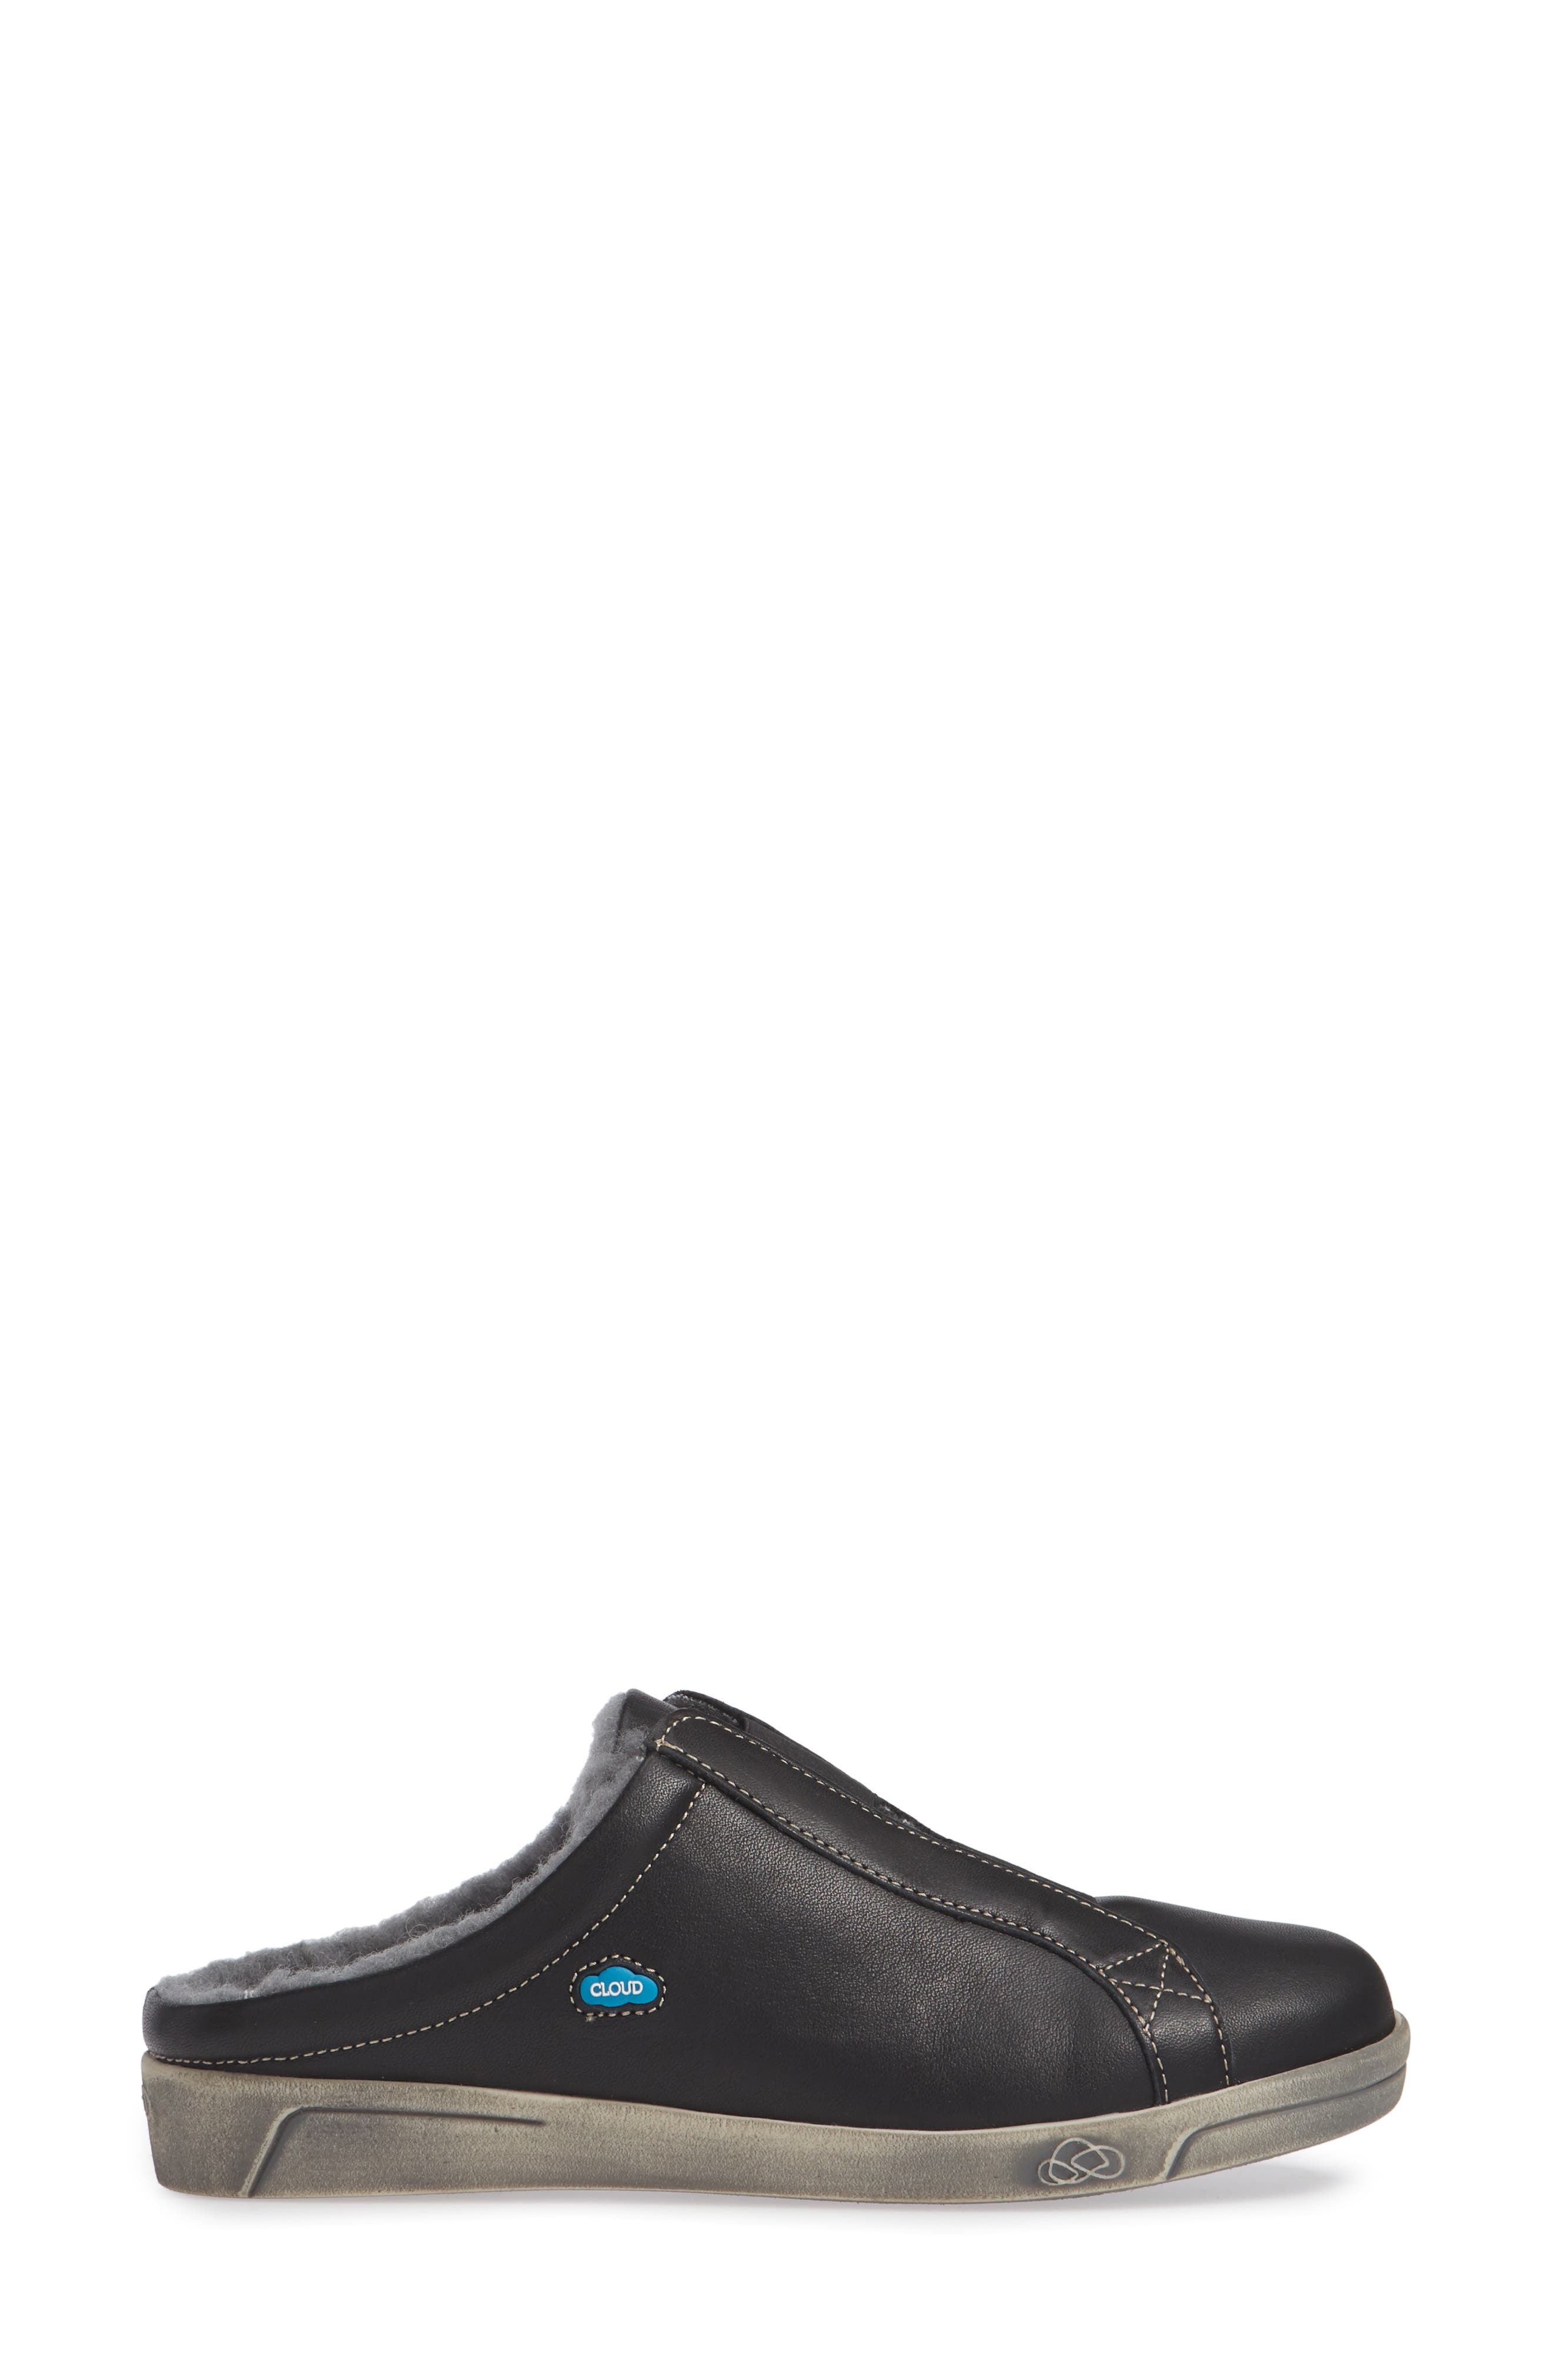 Alexis Wool Lined Backless Sneaker,                             Alternate thumbnail 3, color,                             BLACK LEATHER